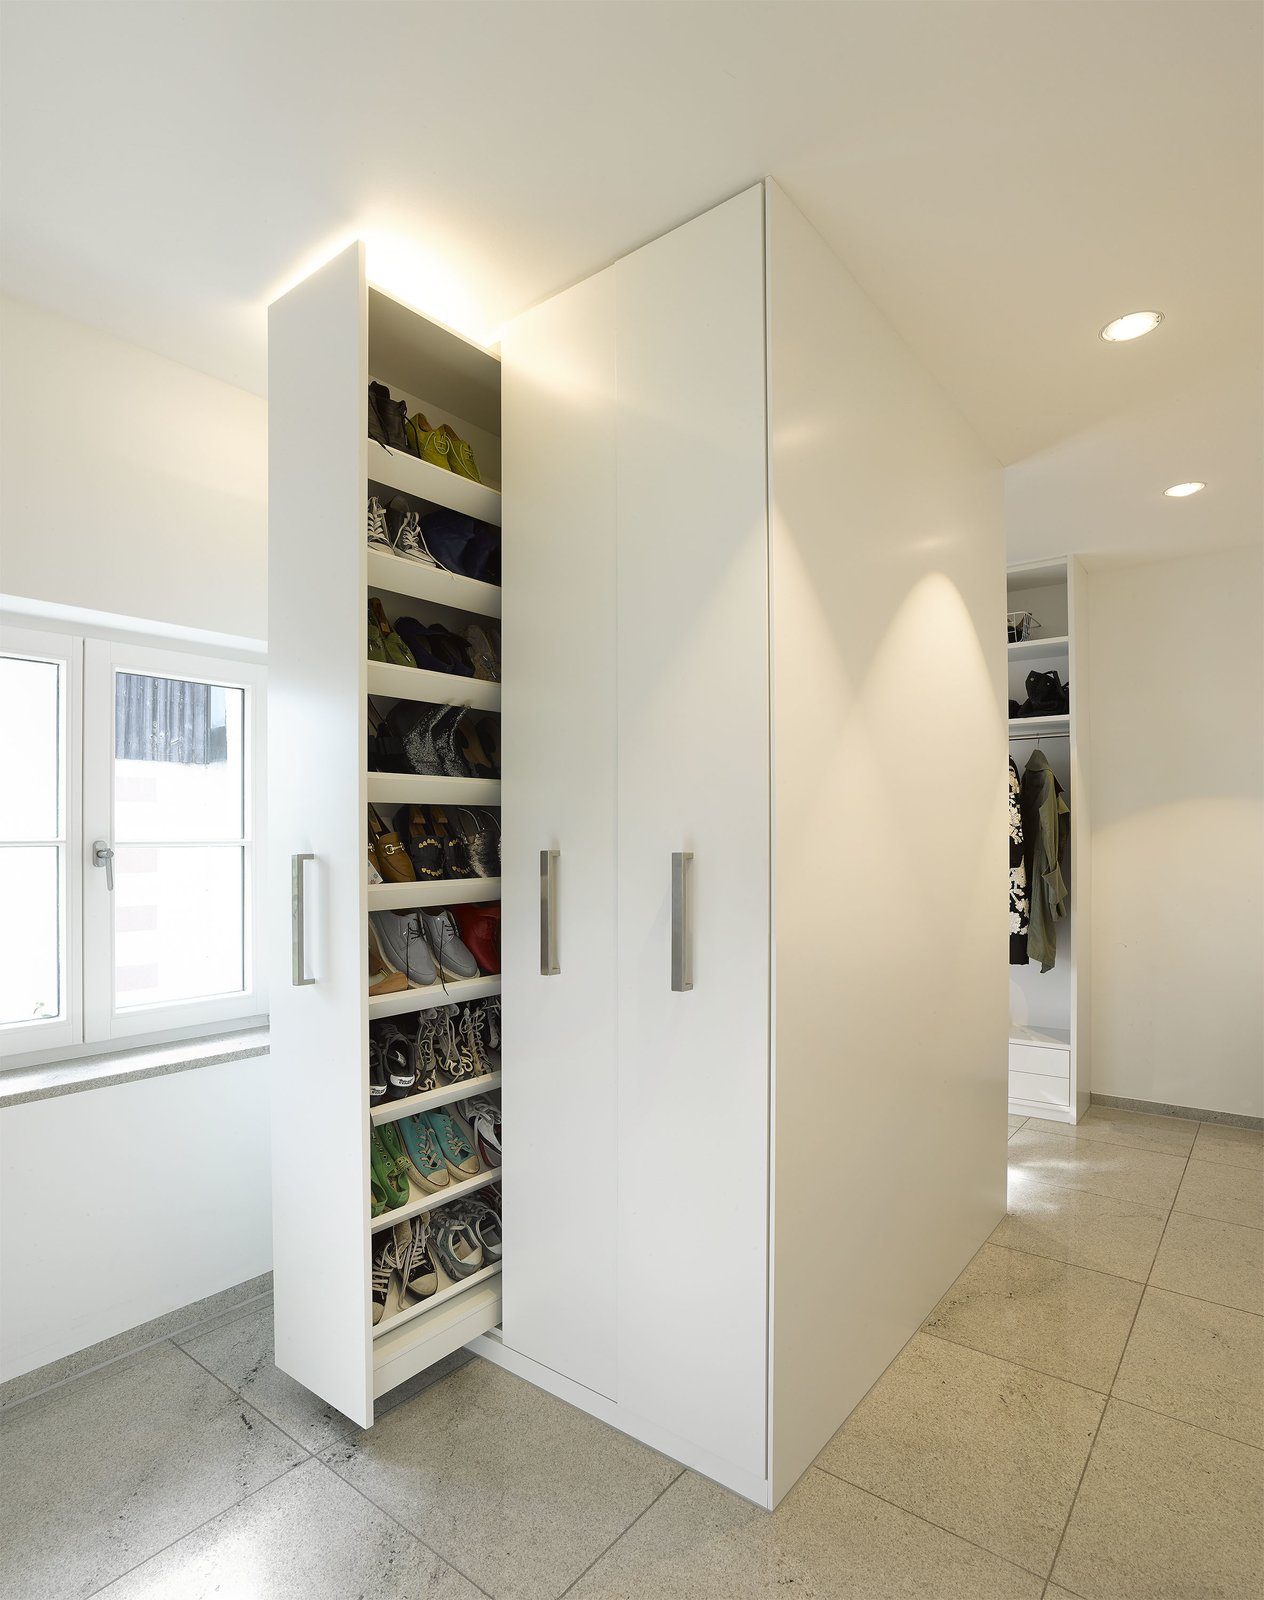 Though the home is expansive, the team made certain to waste as little space as possible. Clever moments of storage, like this sliding shoe closet, abound.  Renovations by Annette Luikart from An Uninspired Home in Germany Gets a Bright, Eco-Friendly Update